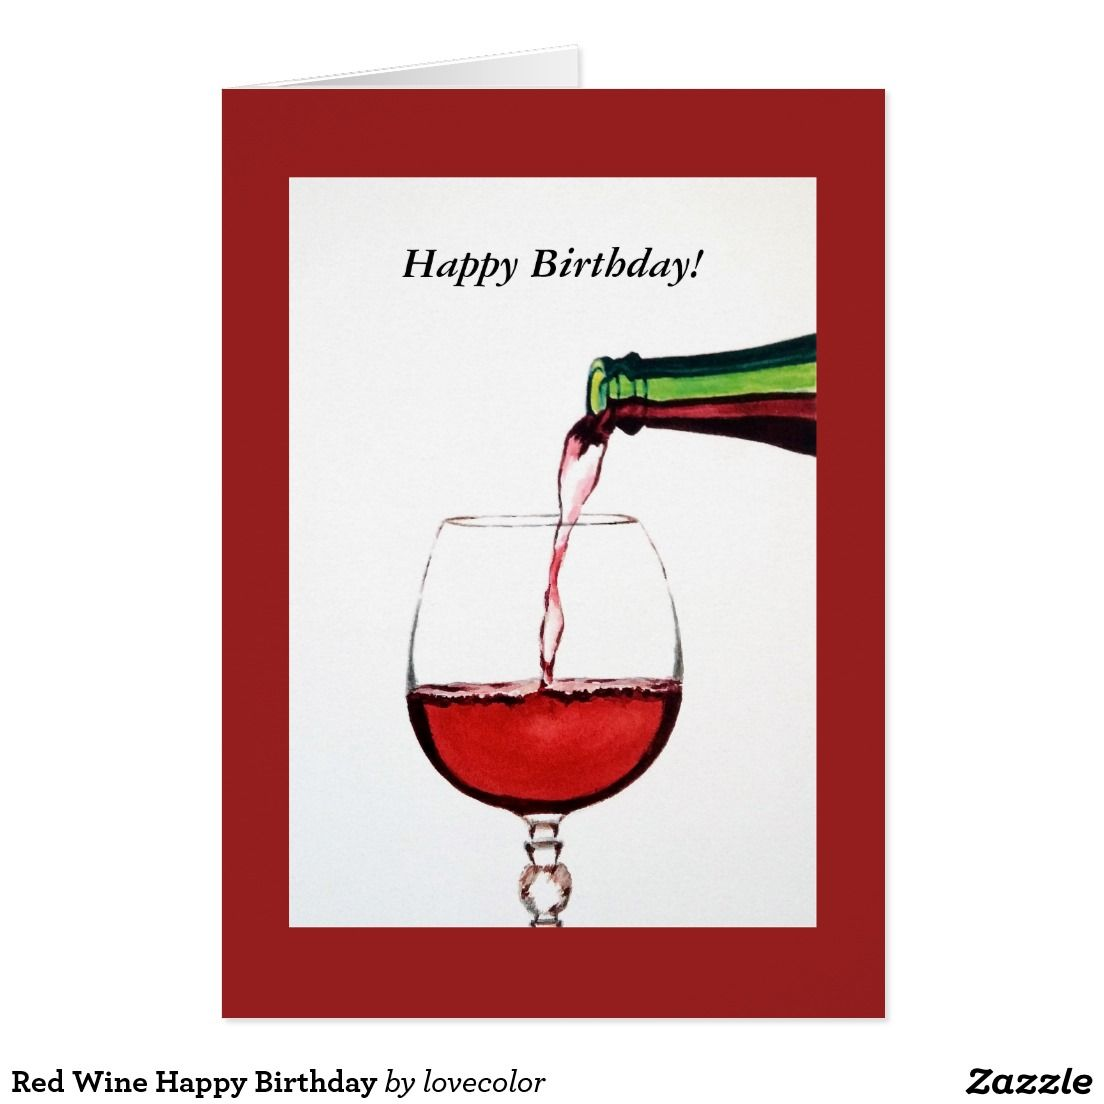 Red Wine Happy Birthday Card Zazzle Com Happy Birthday Wine Wine Birthday Cards Happy Birthday Wine Card